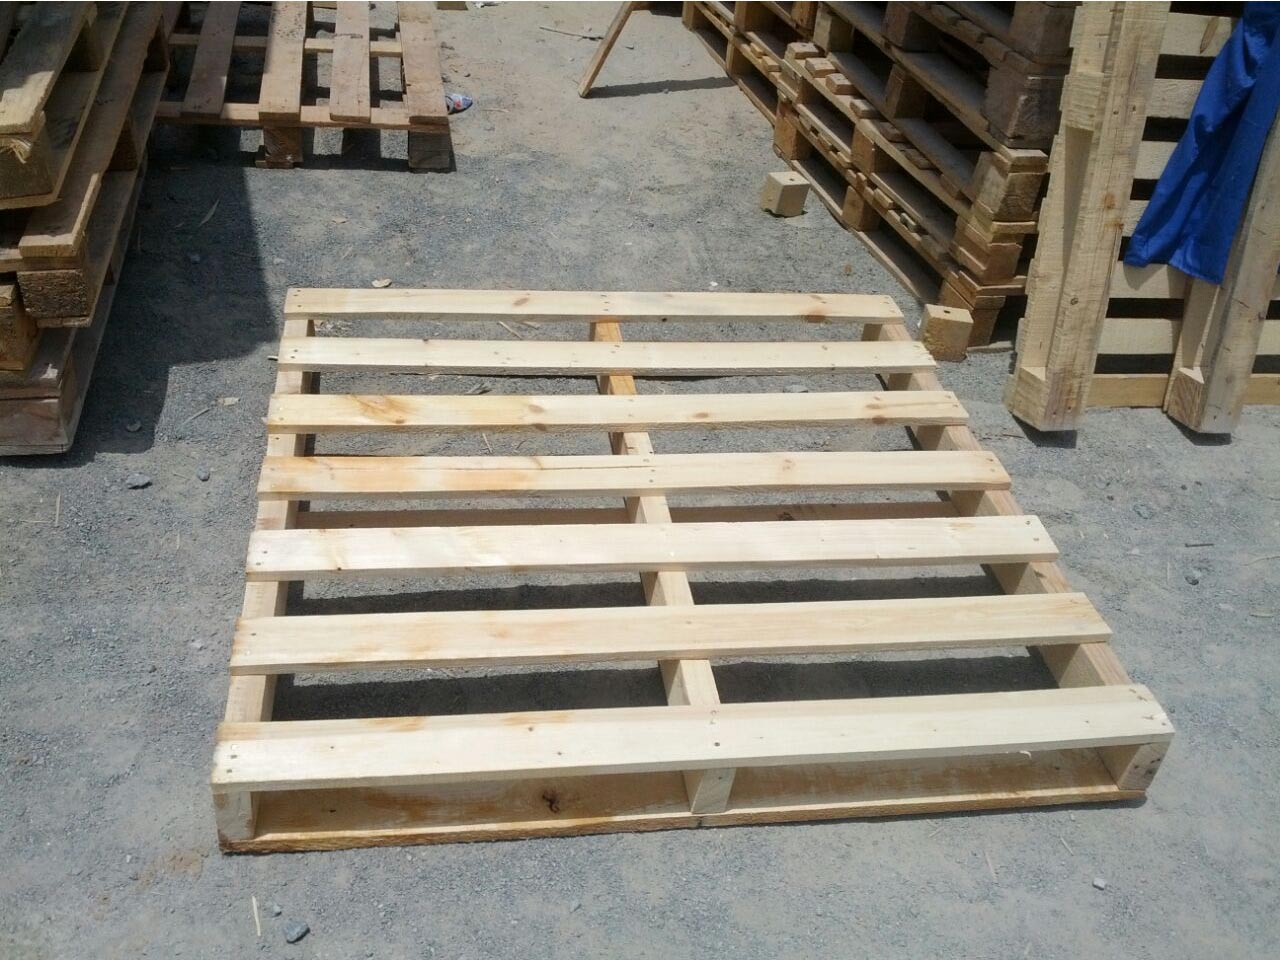 pallets stored